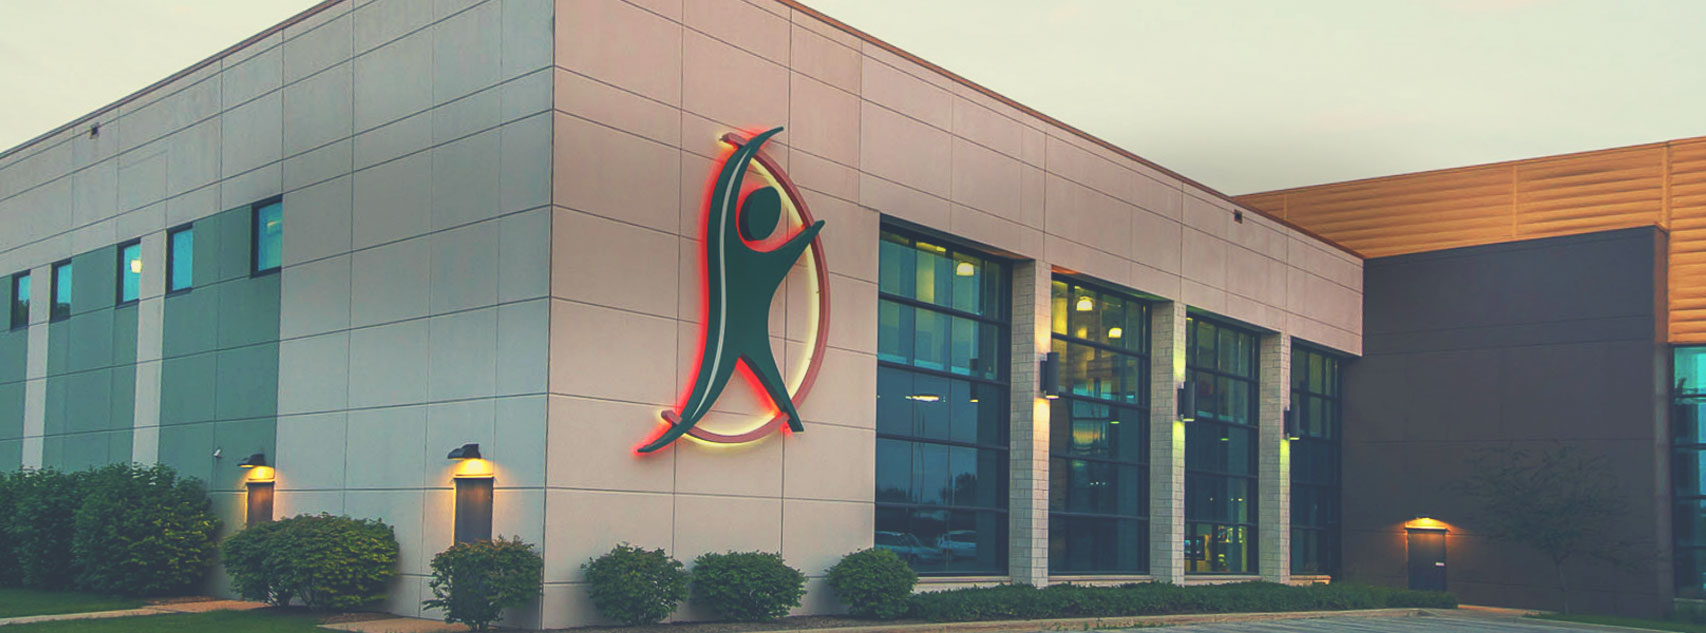 Innovative Health and Fitness is a Franklin Health Club that will aid you in all your fitness goals. Picture of our exterior building with logo.